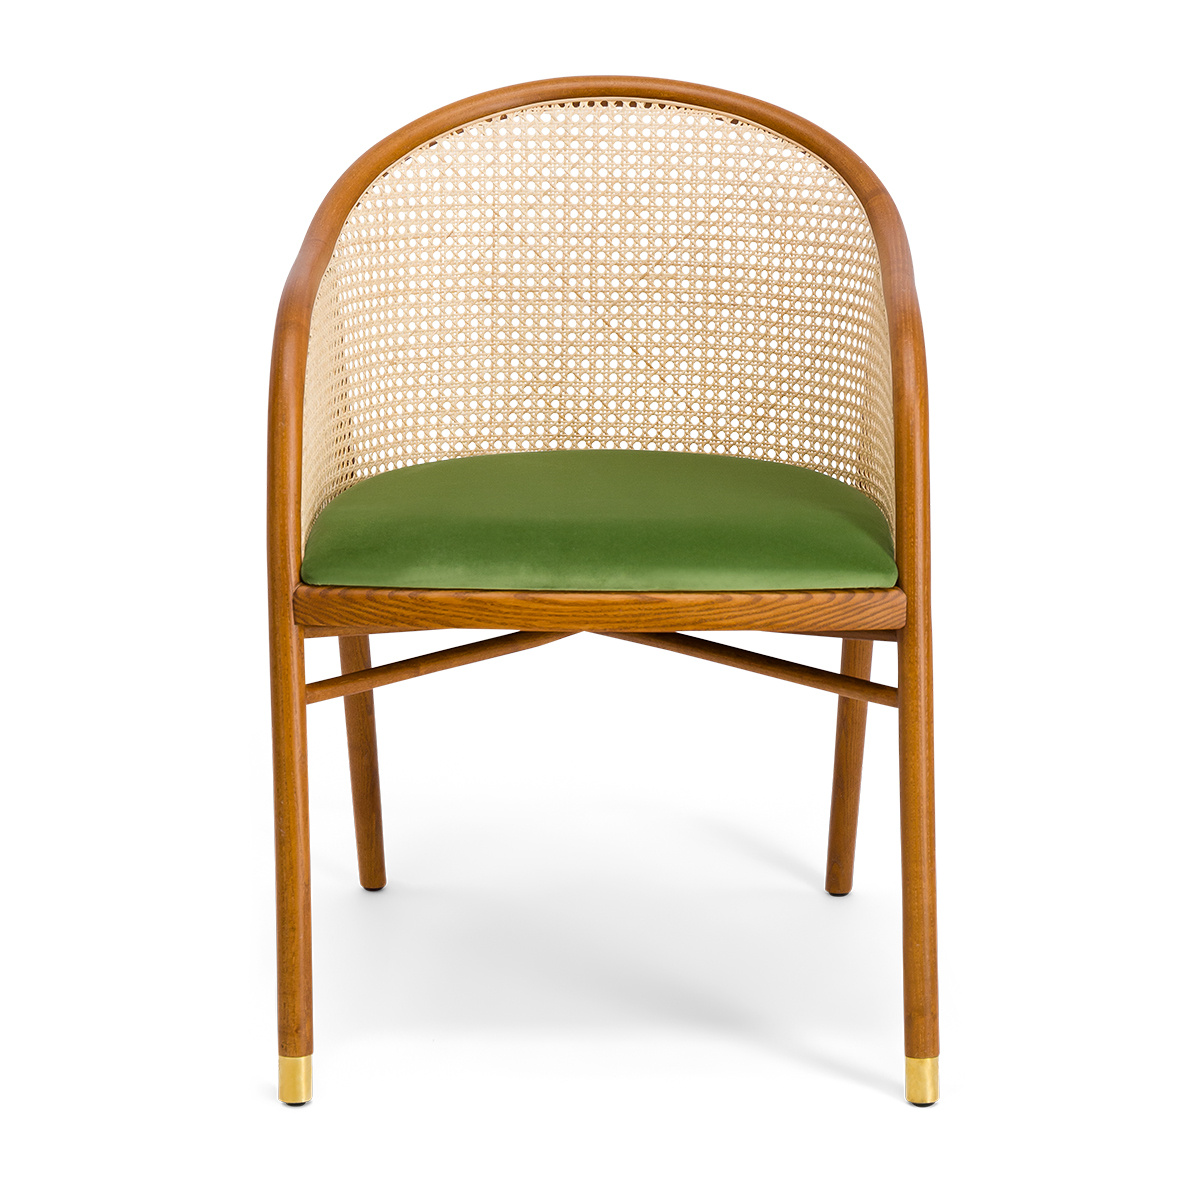 Cavallo Armchair, Almond Green Velvet with Cherrywood Frame